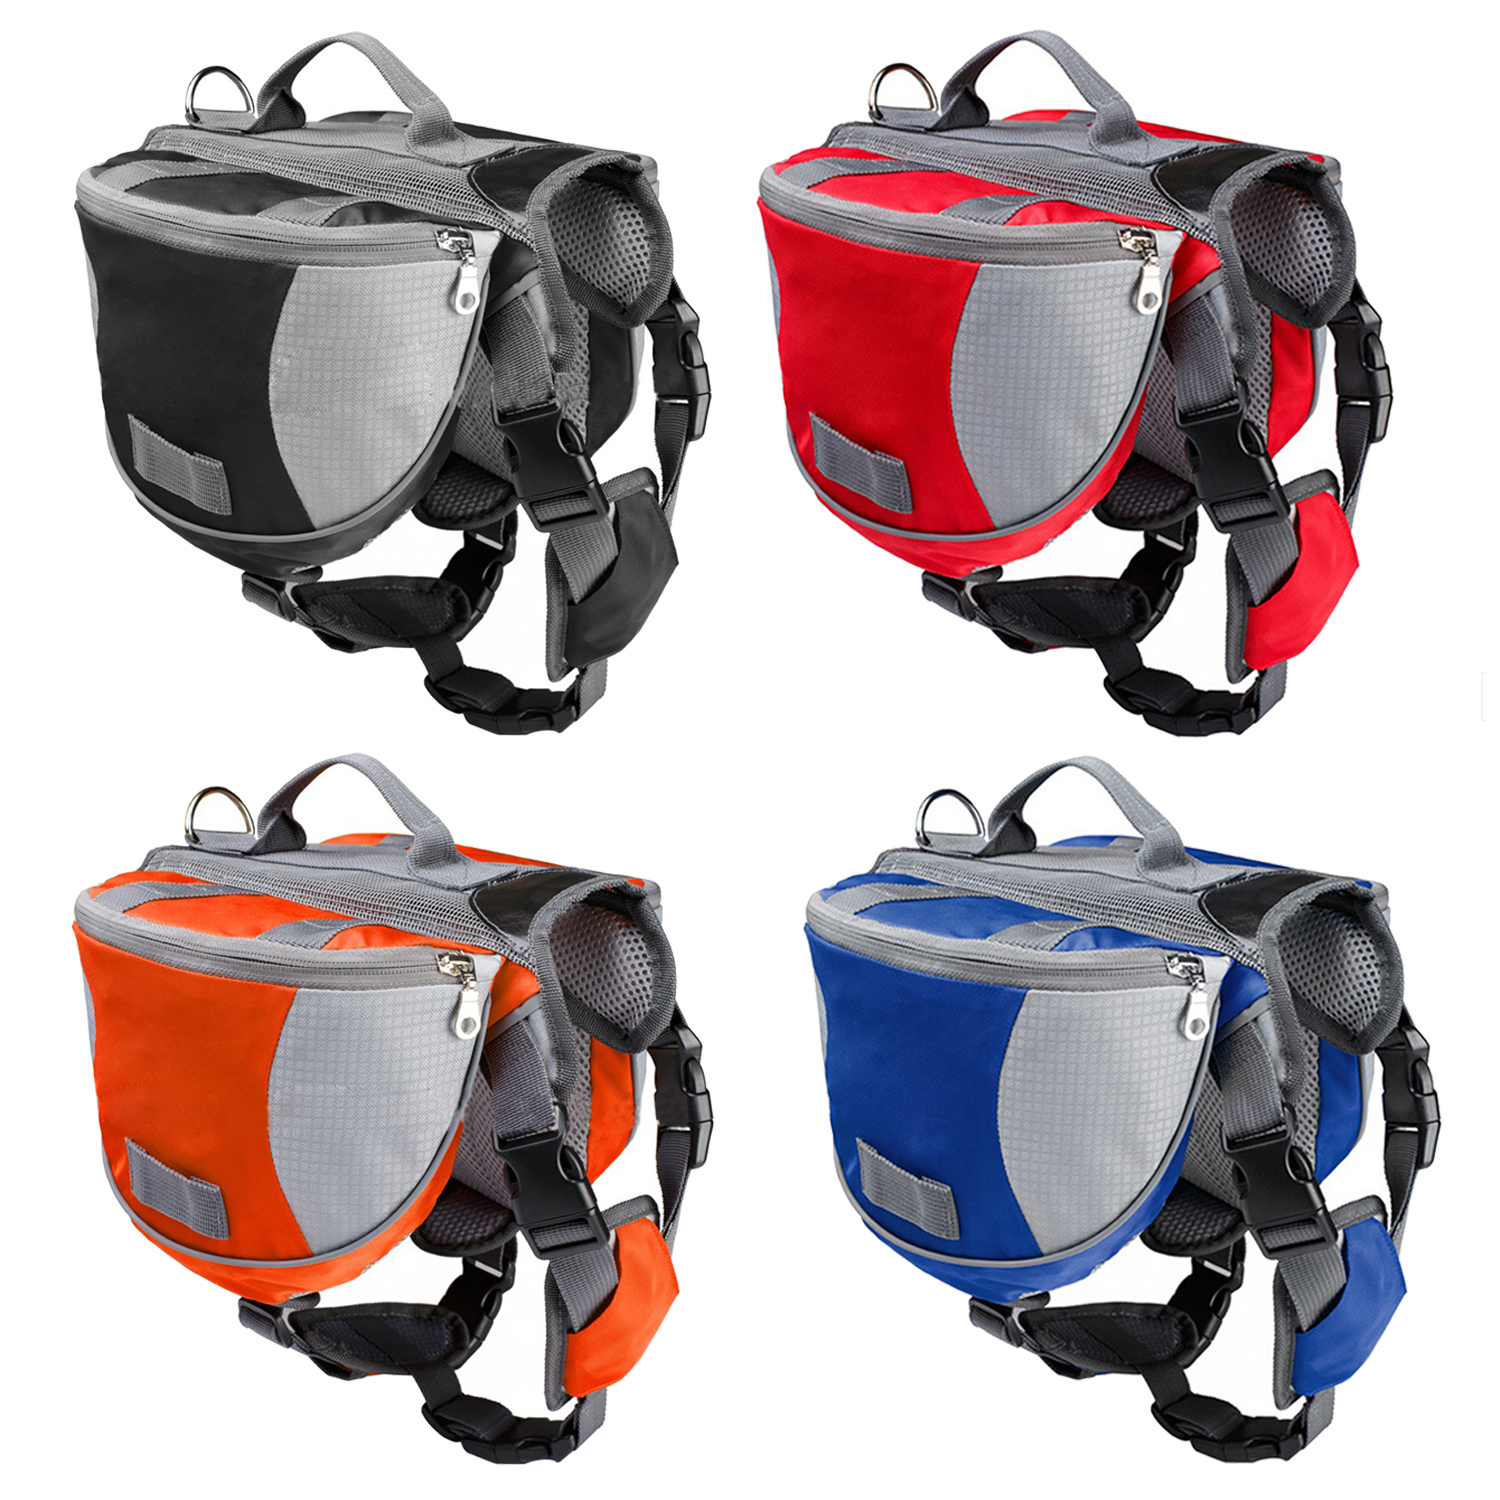 a1 tailup haustier rucksack hund mittel und gross hunde harness tasche ideal ebay. Black Bedroom Furniture Sets. Home Design Ideas